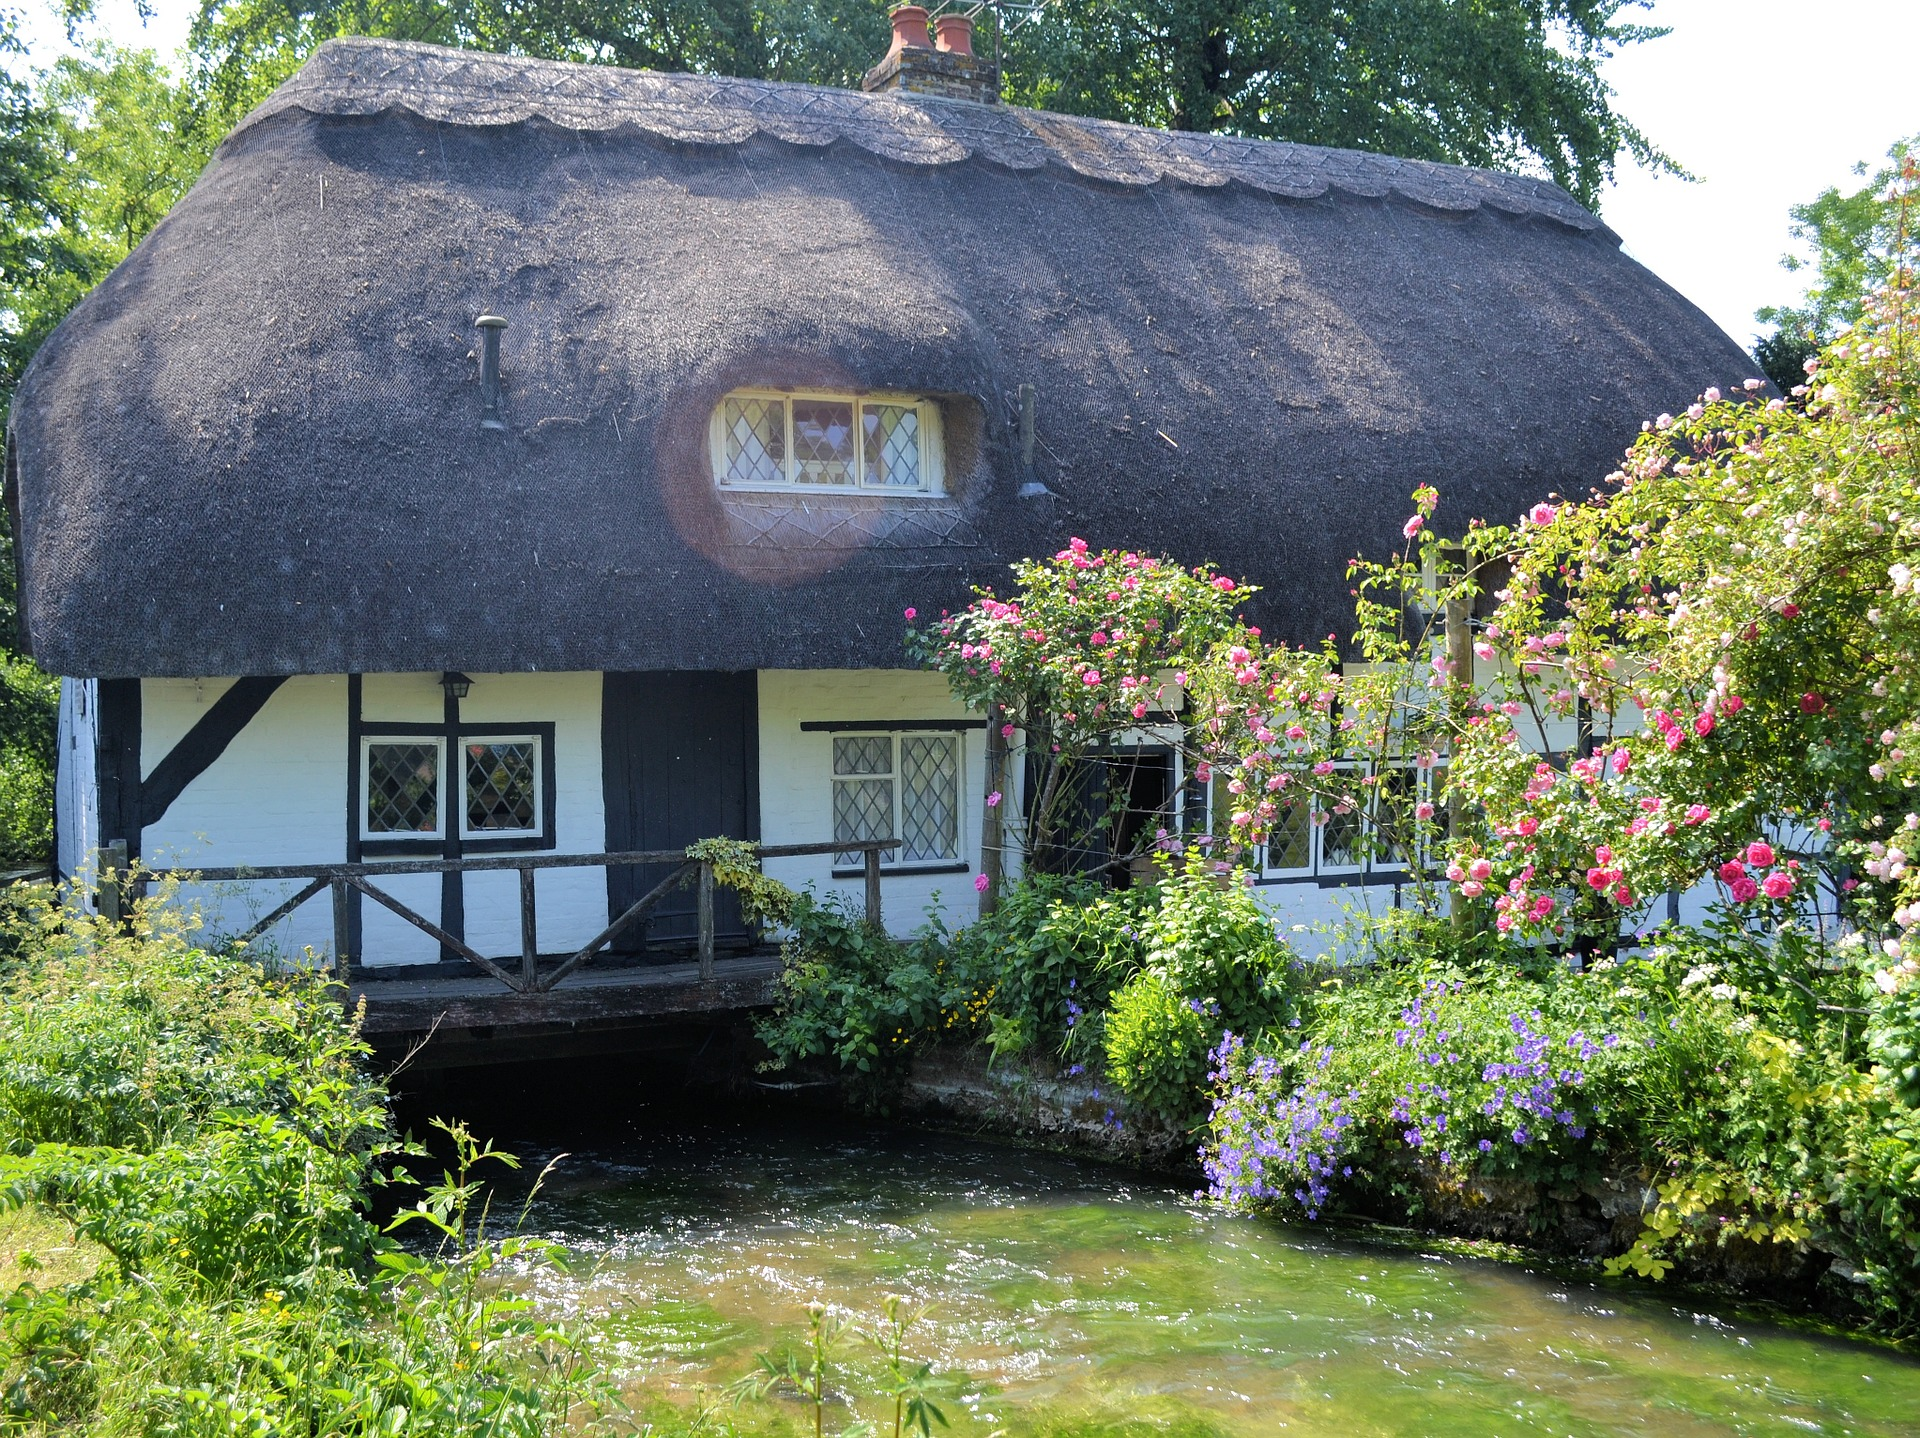 Un cottage anglais typique